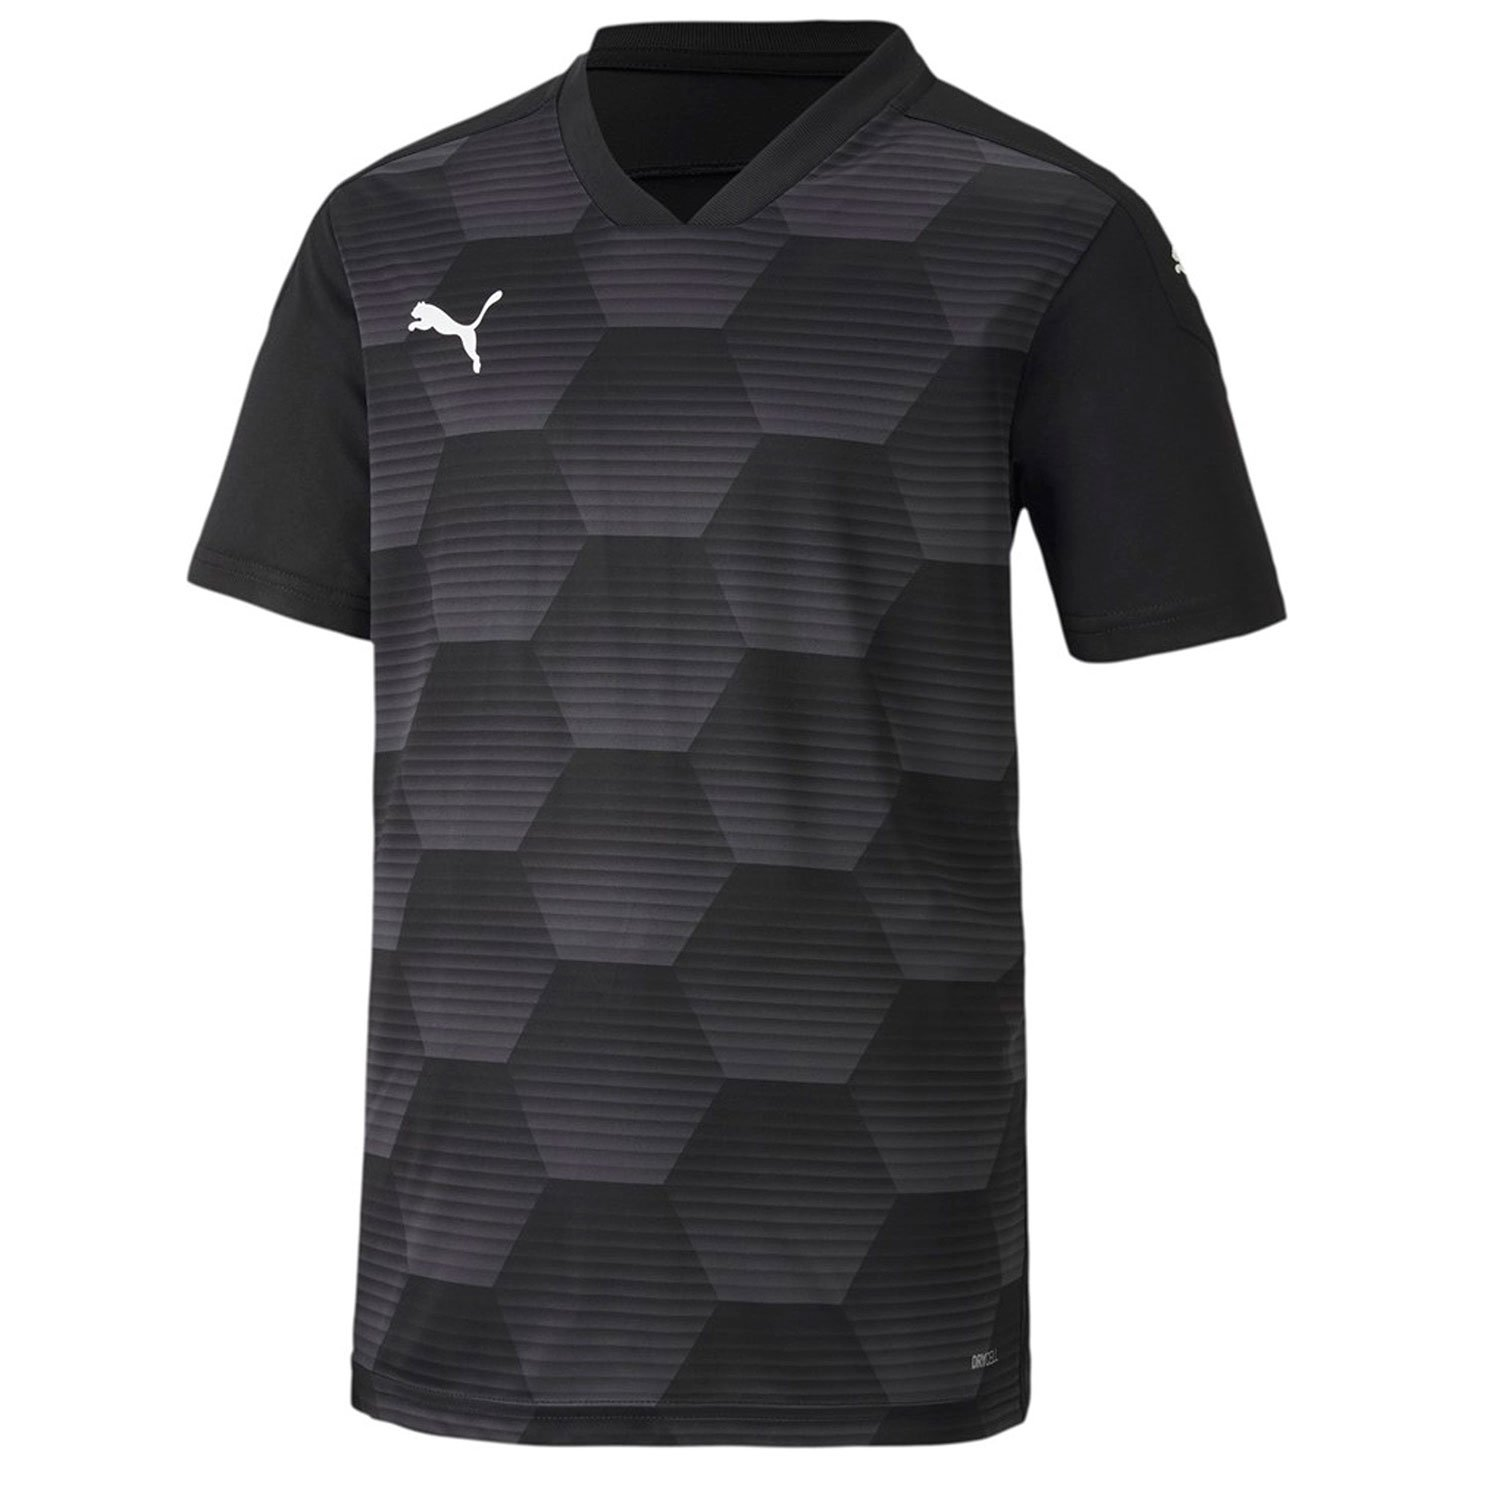 Майка игровая Puma teamFINAL 21 Graphic Jersey